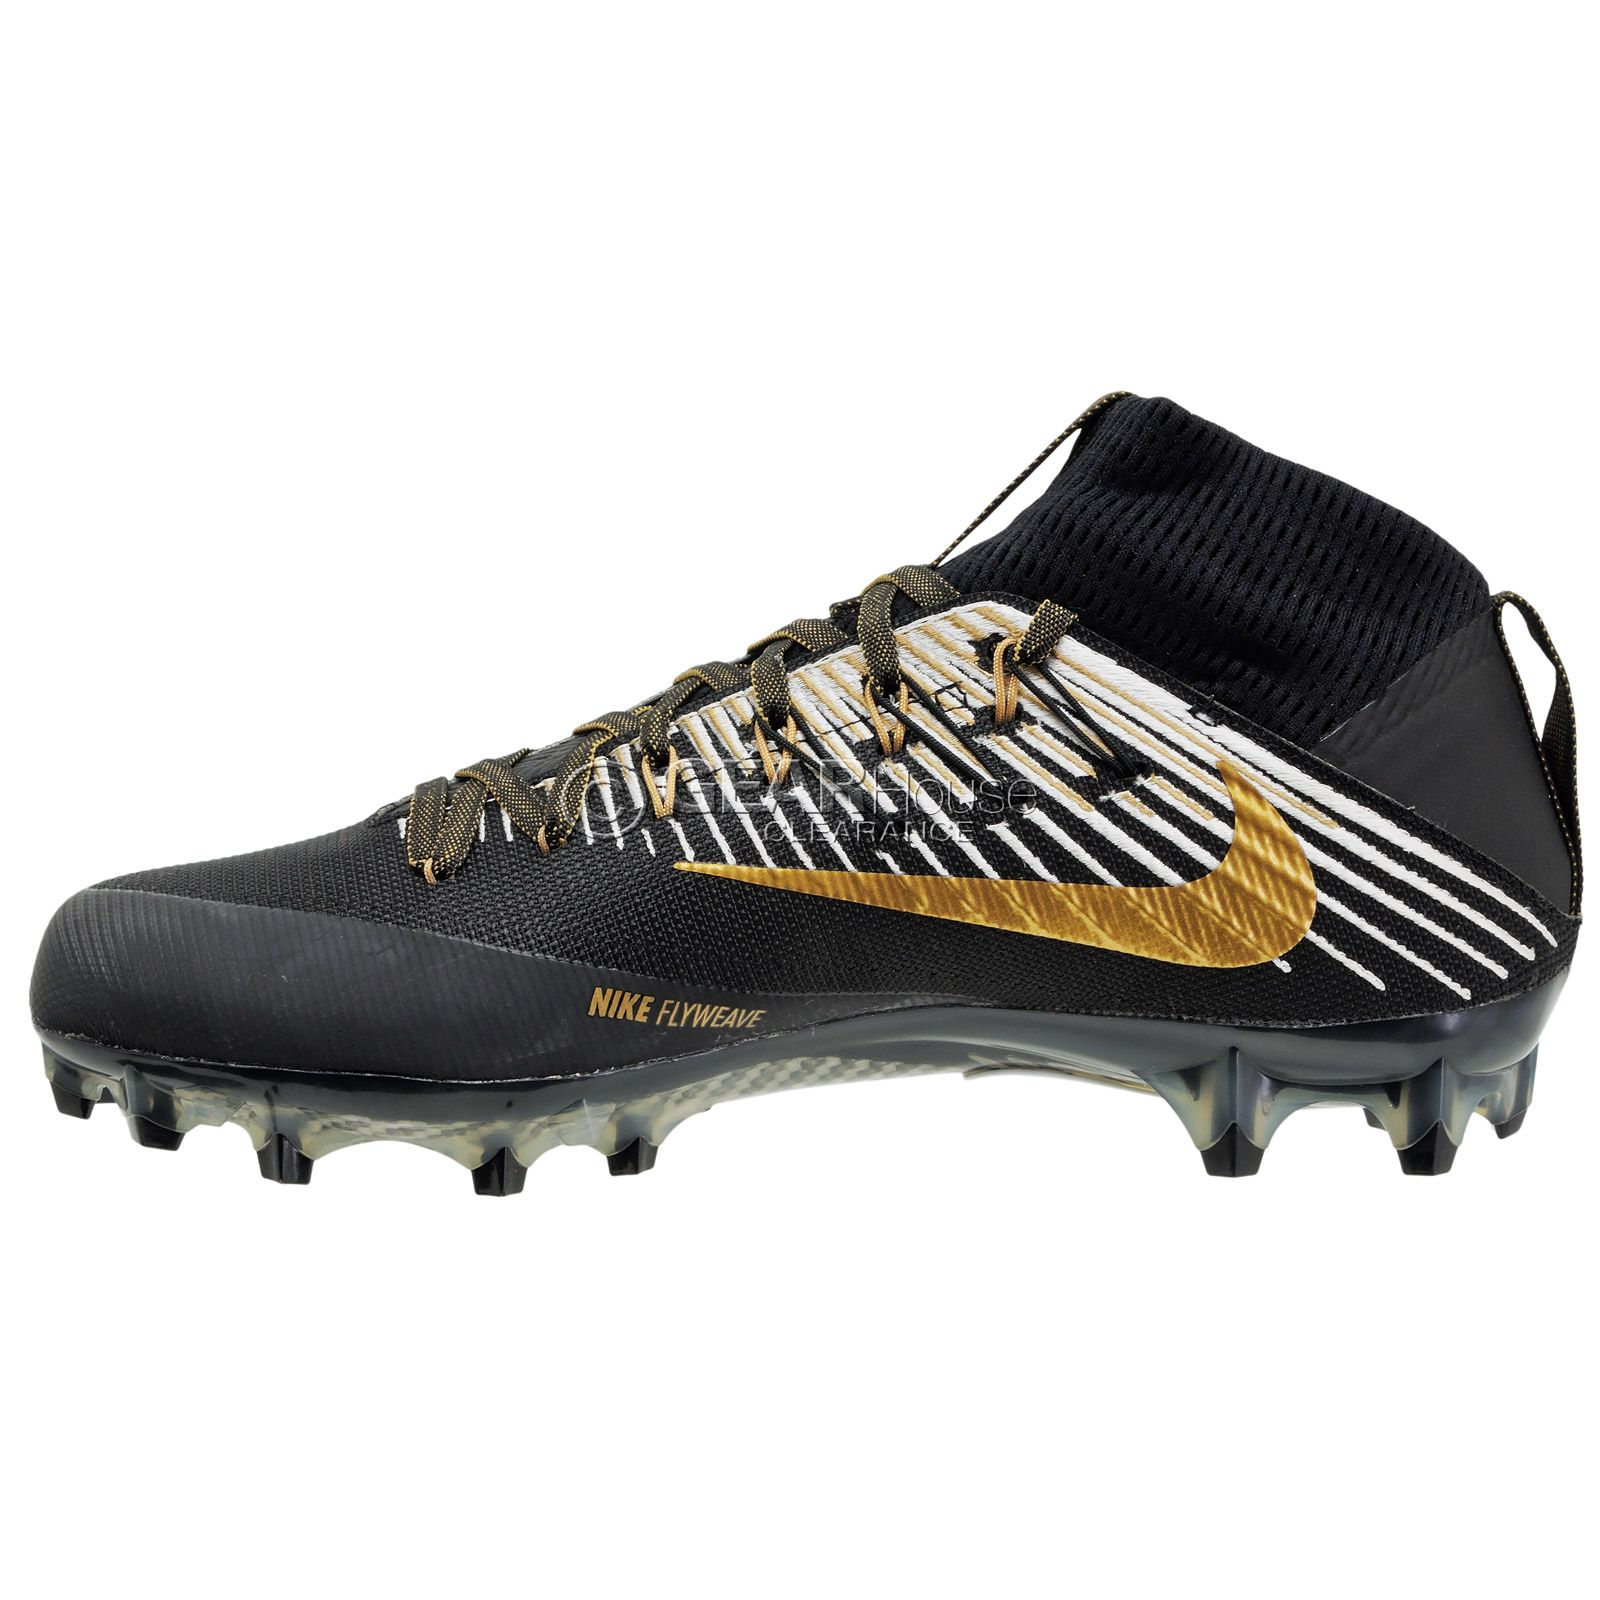 Huge Football Cleat Clearance Sale Going On Now Top Level Cleats From Nike Under Armour Adidas Up To 80 Off The Origin Football Cleats Cleats Sport Shoes